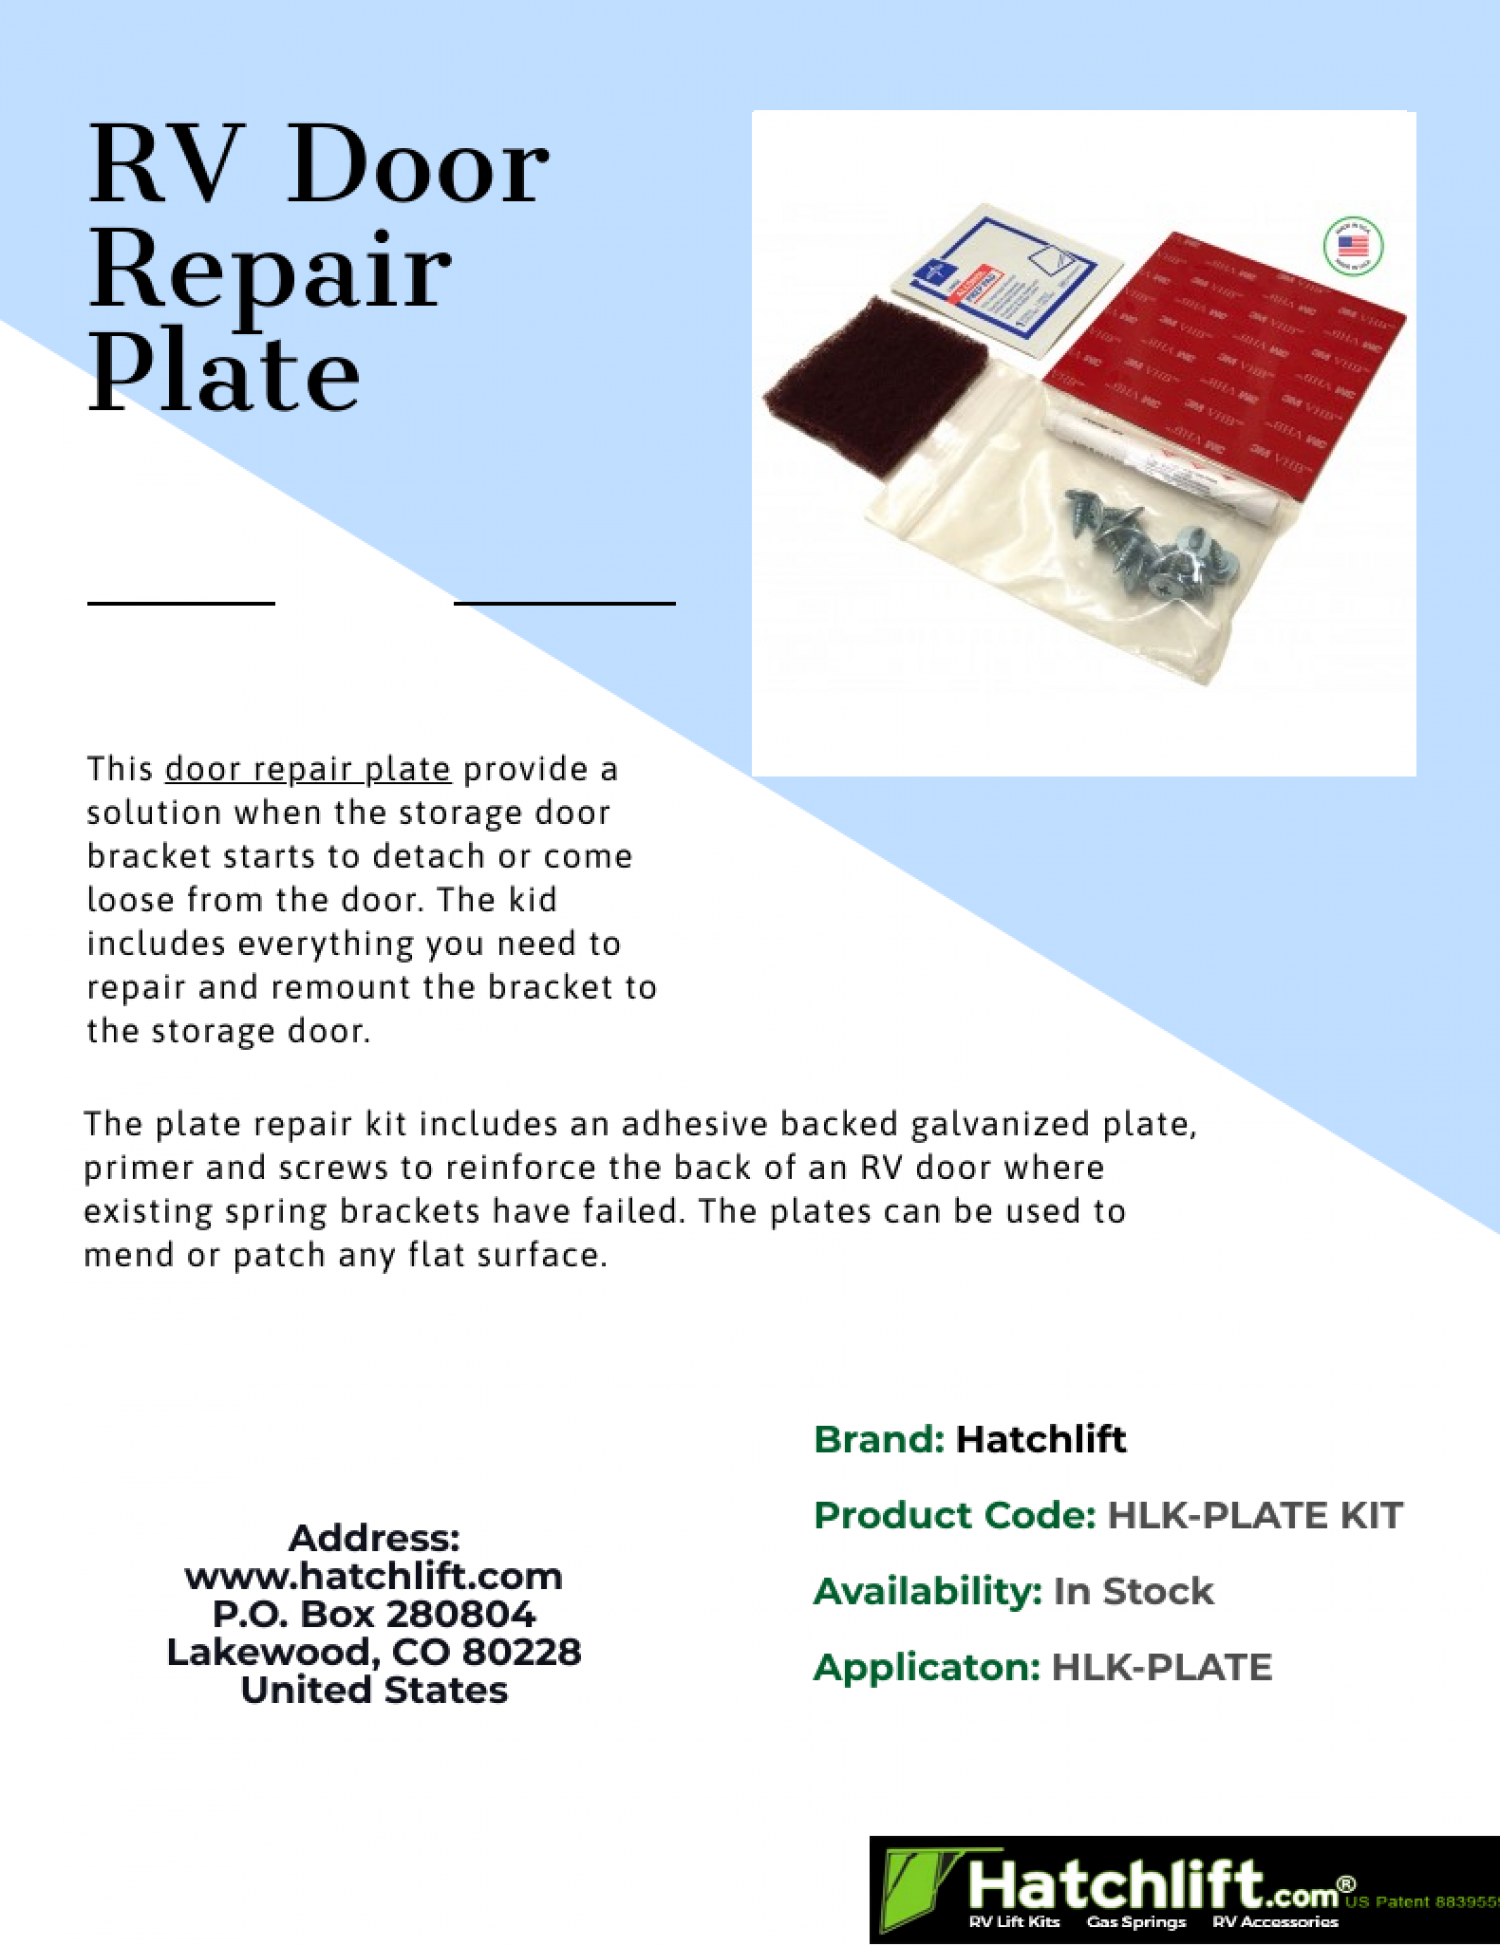 RV Door Repair Plate by HatchLift Infographic